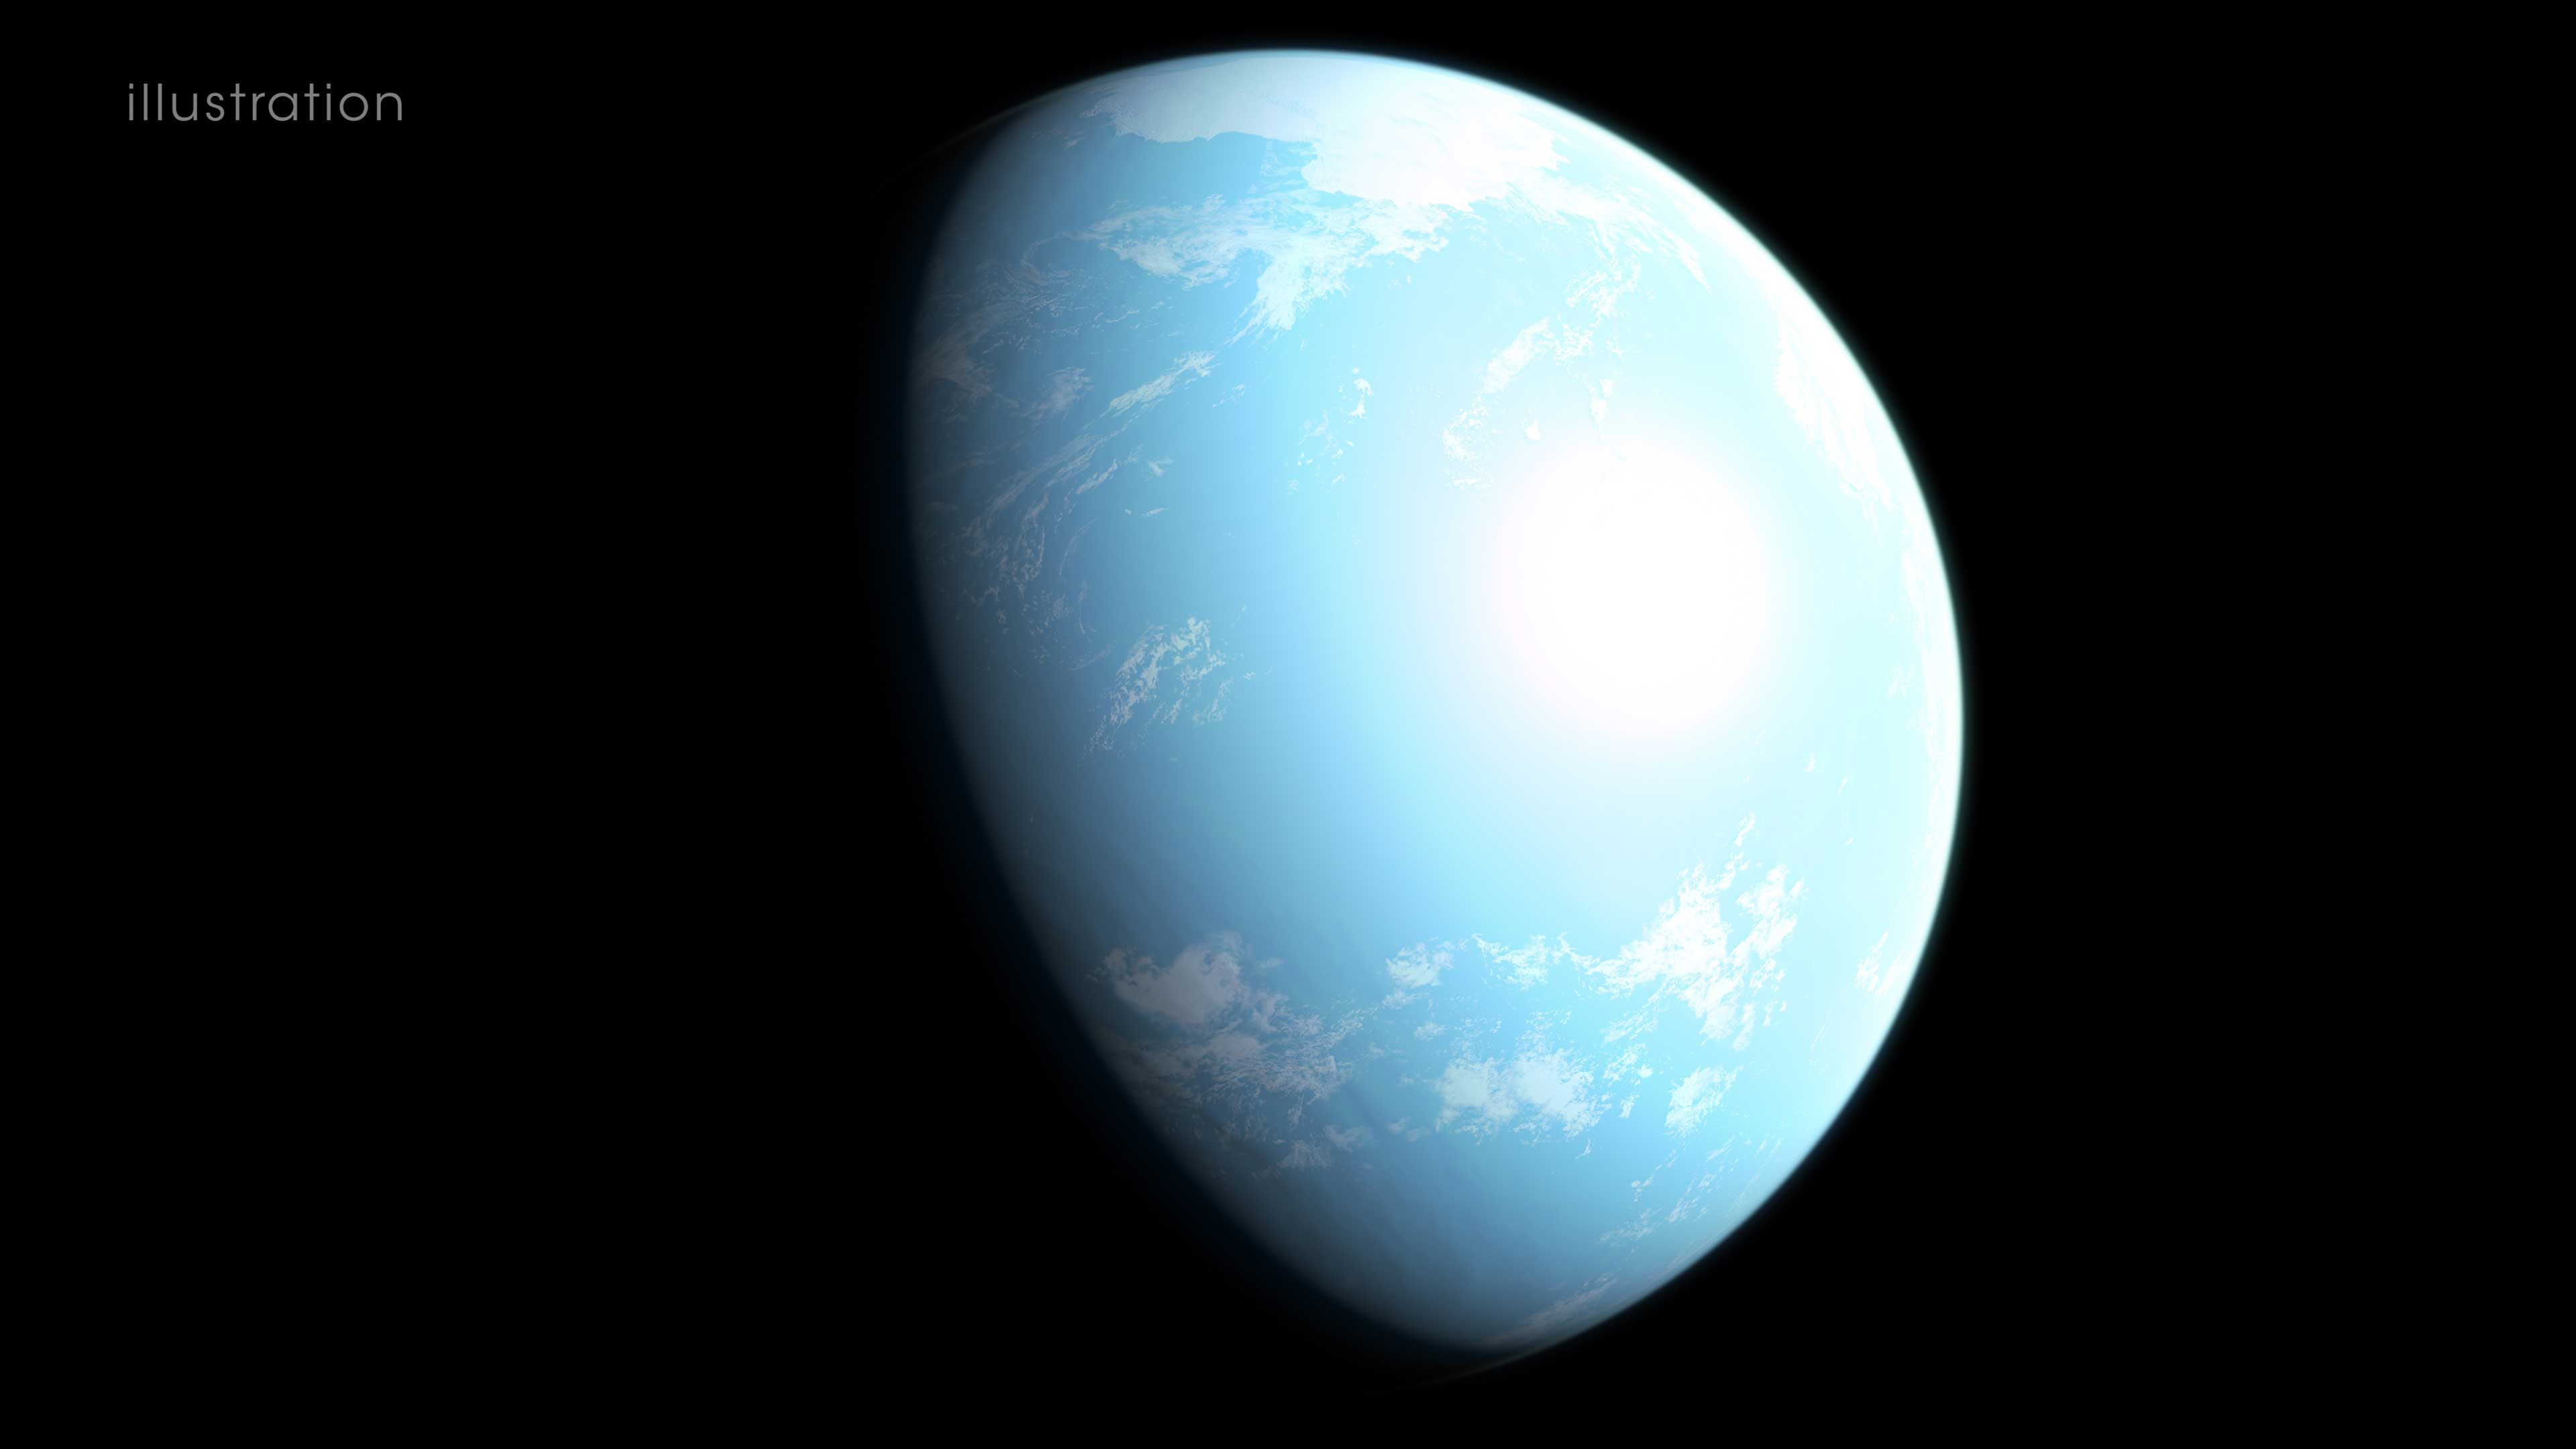 The exoplanet GJ 357 d discovered by TESS